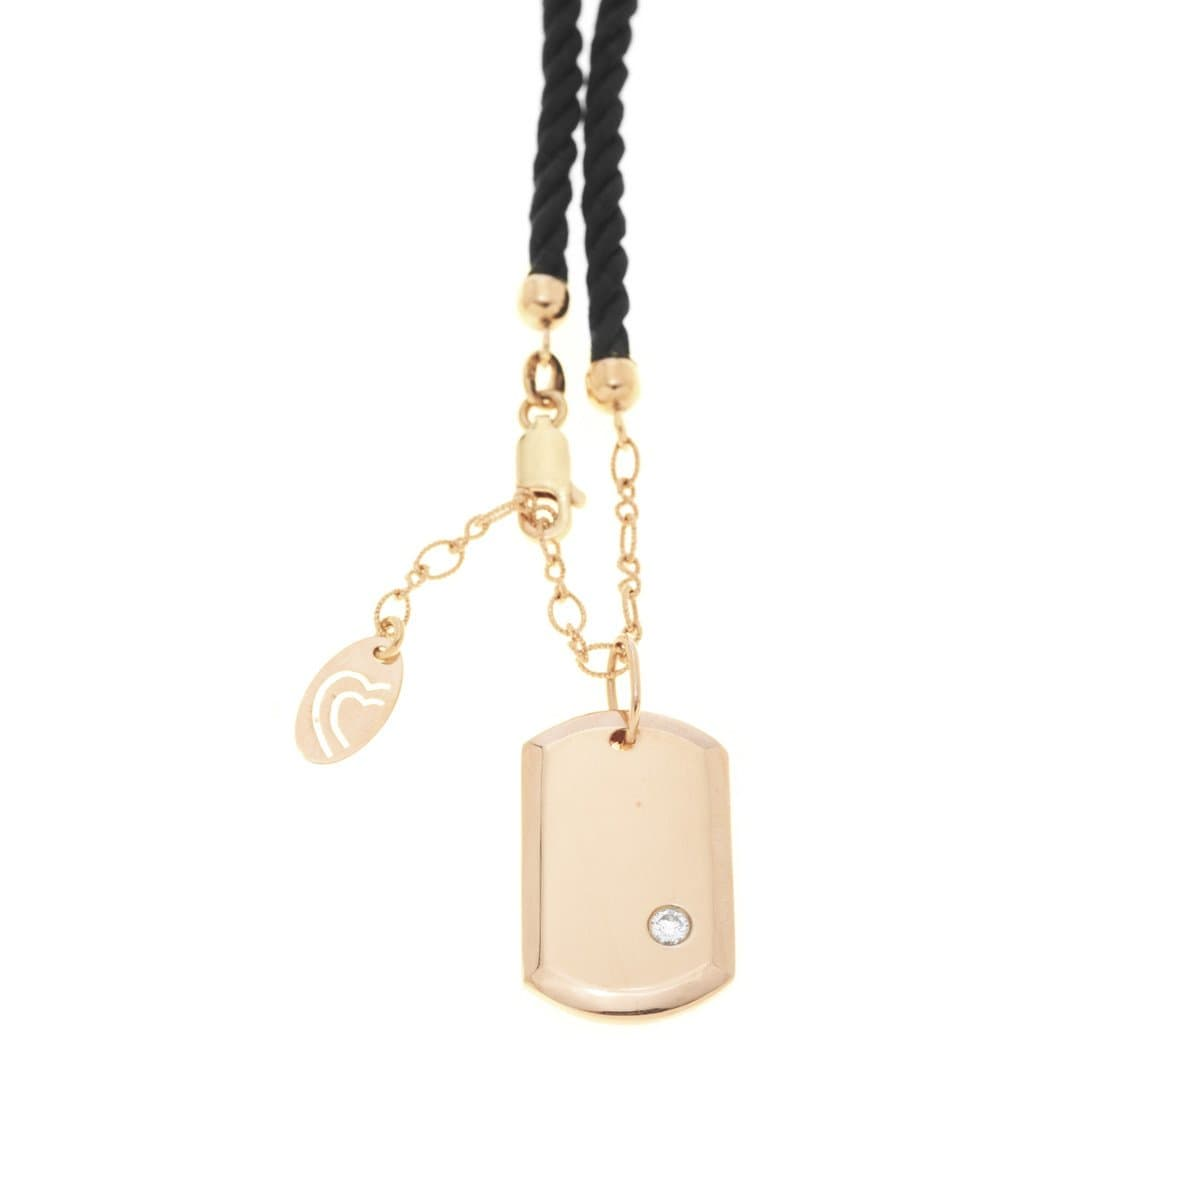 BABY DOG TAG - Chris Aire Fine Jewelry & Timepieces